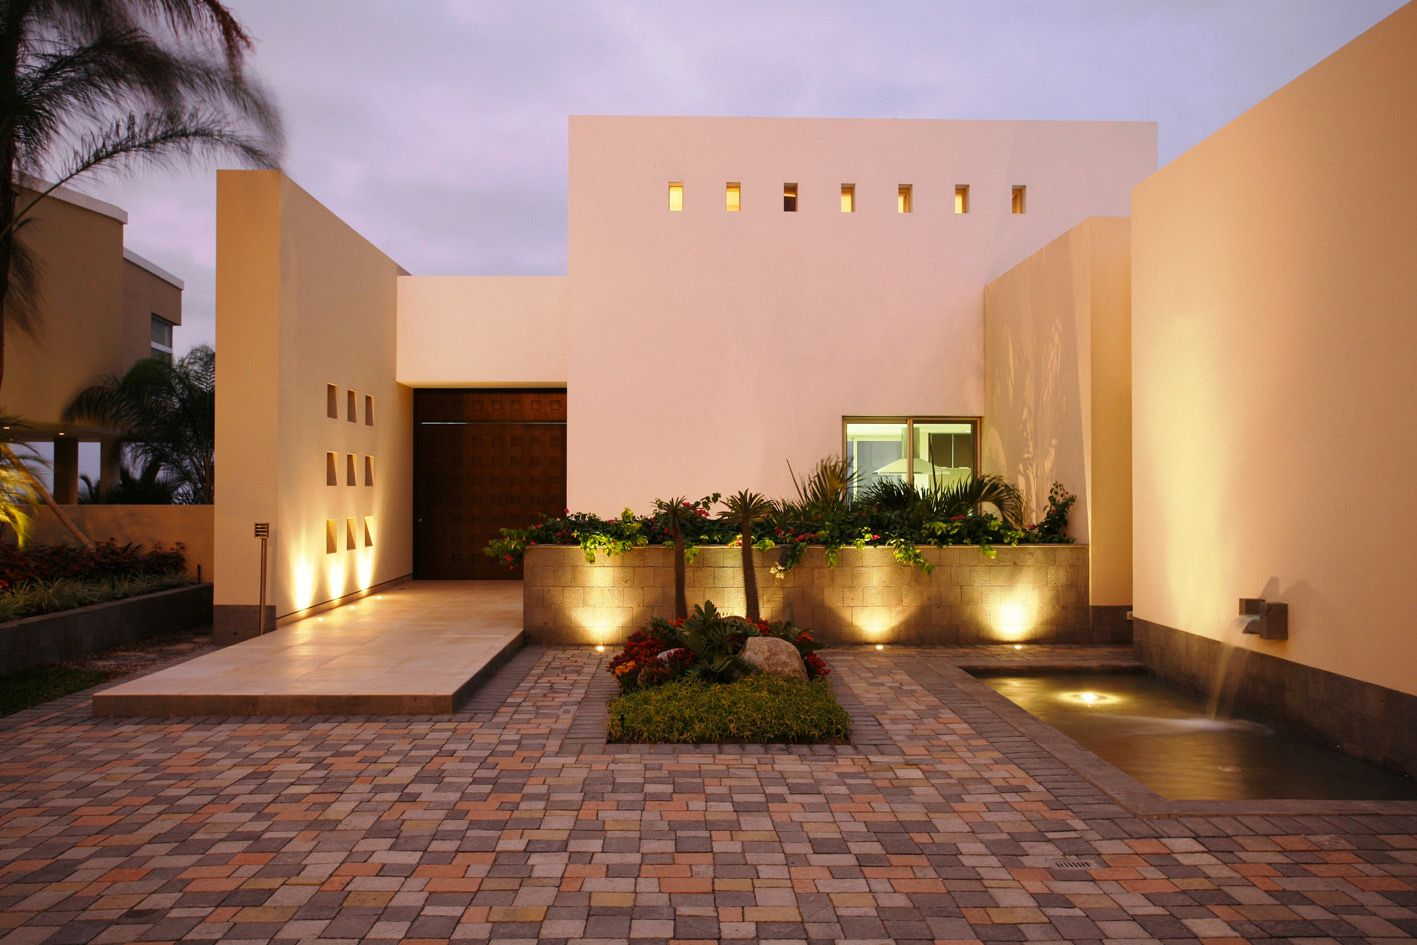 House Quito Architecture Design House Styles Architecture House